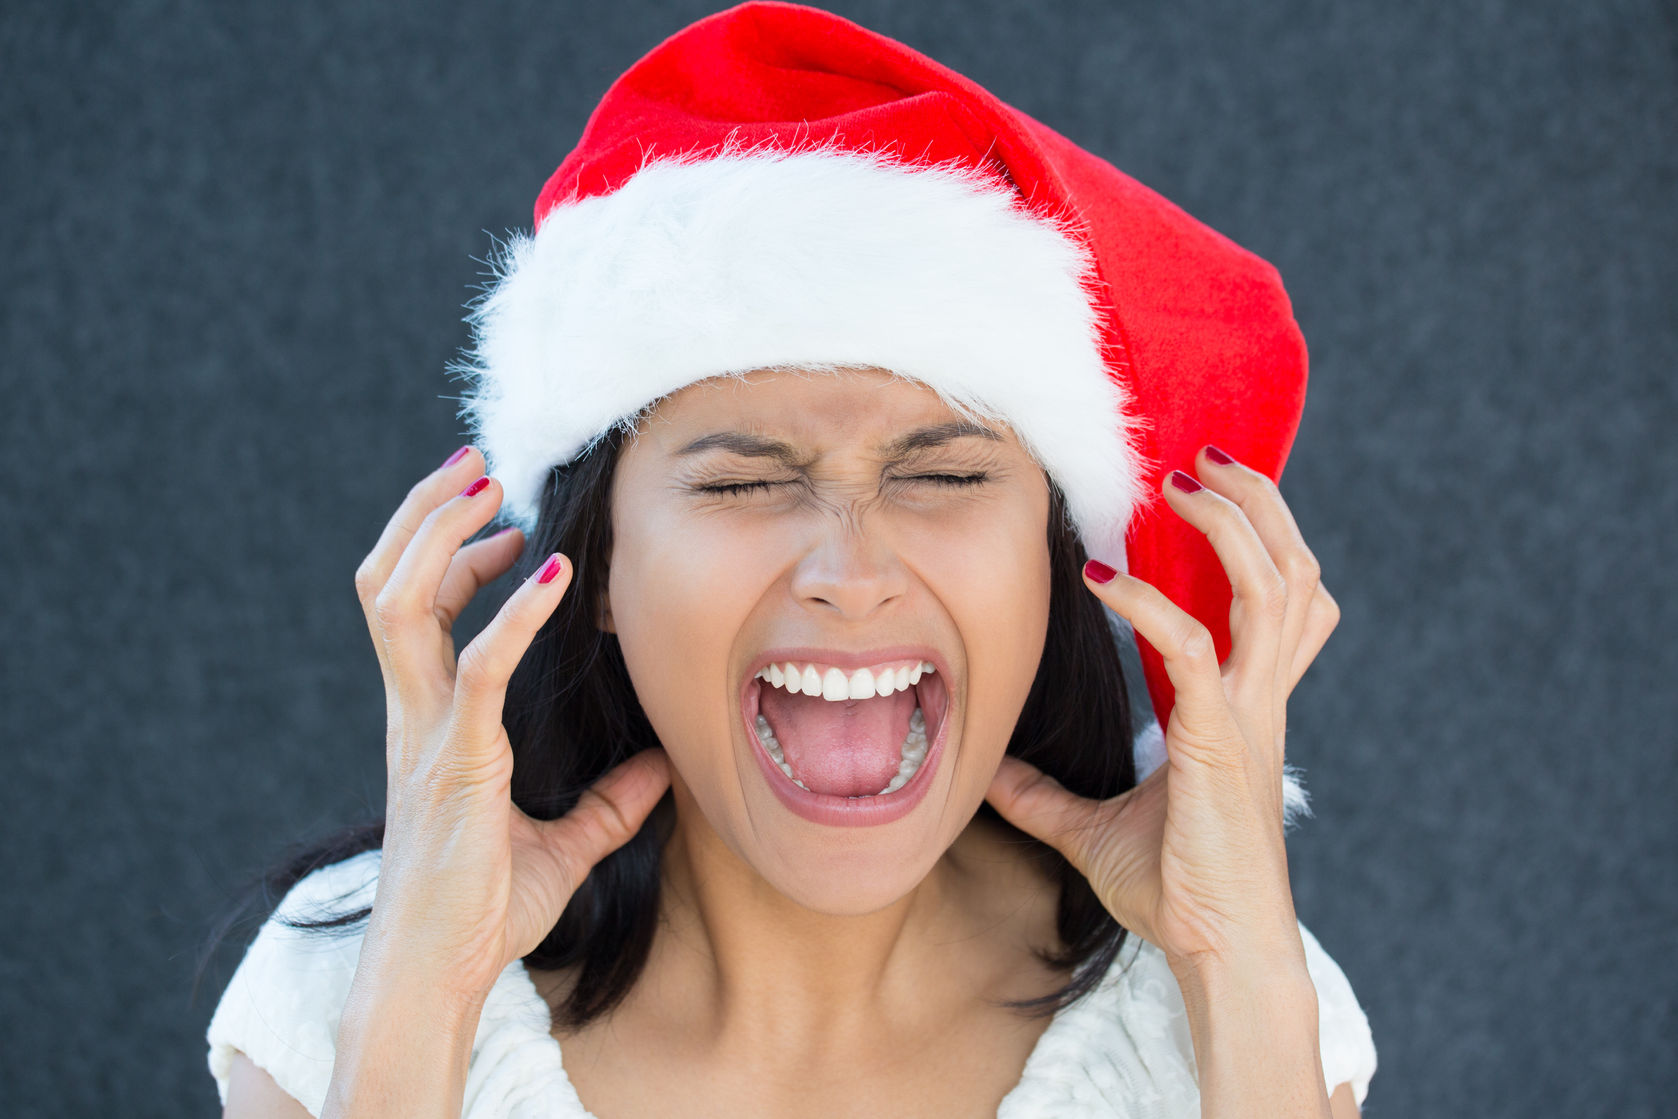 32215284 - closeup portrait of a cute christmas woman with a red santa claus hat, white dress, screaming out loud, frustrated, eyes shut in rage. negative human emotion on an isolated grey background.